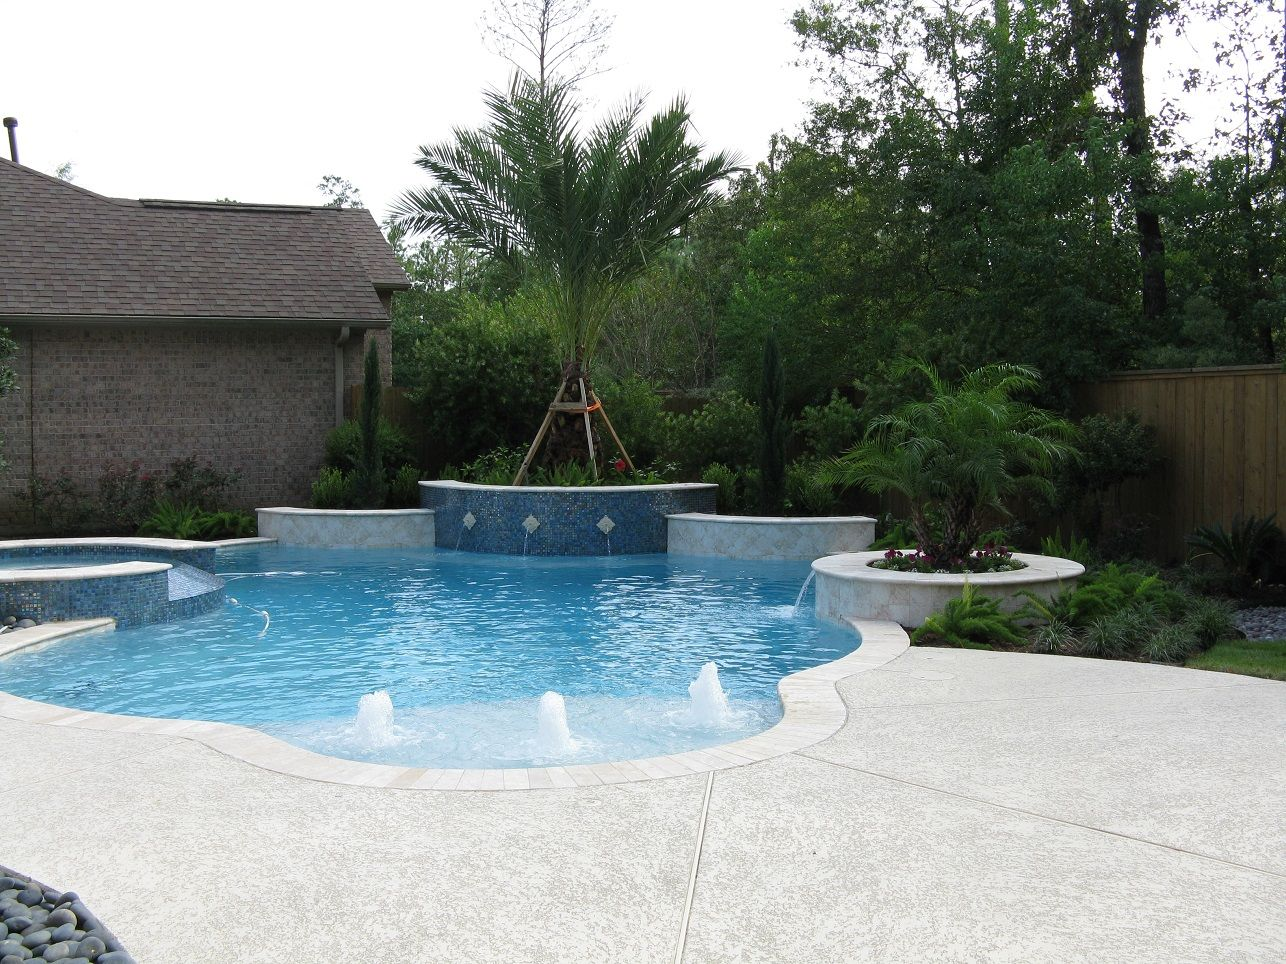 Get Perfect Ideas For Building Your Luxury Swimming #pool Within Your  Budget. Http: